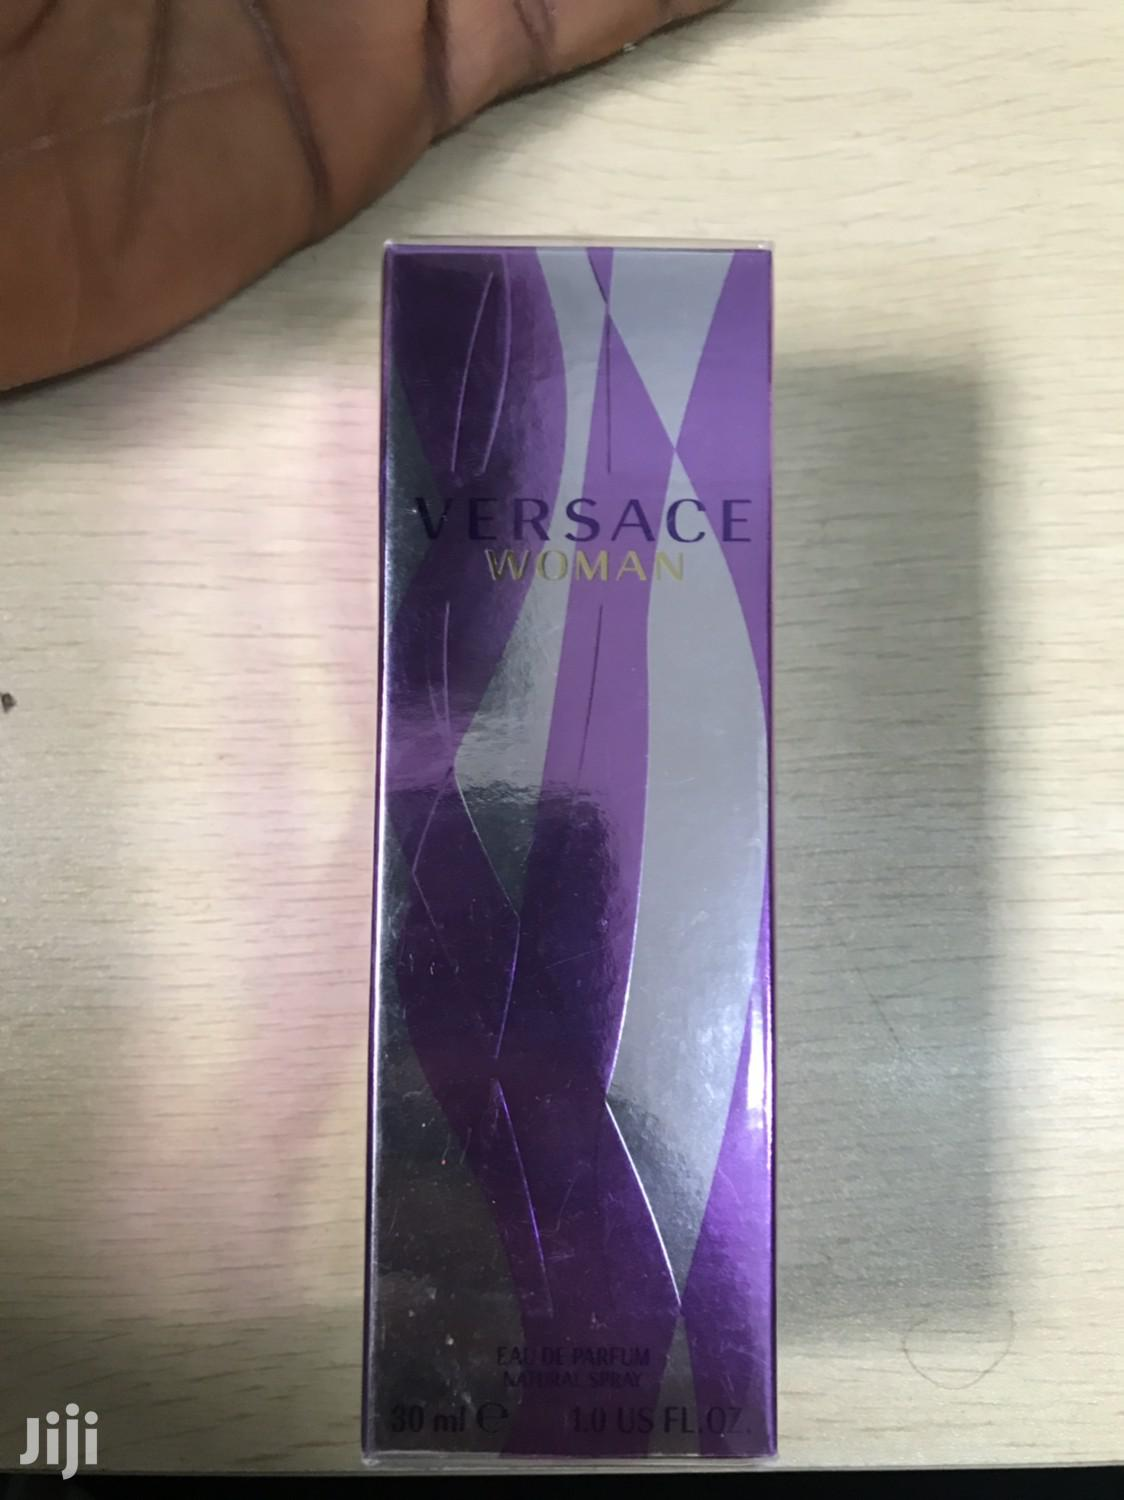 Versace Women's Spray 100 Ml | Fragrance for sale in Central Business Dis, Abuja (FCT) State, Nigeria